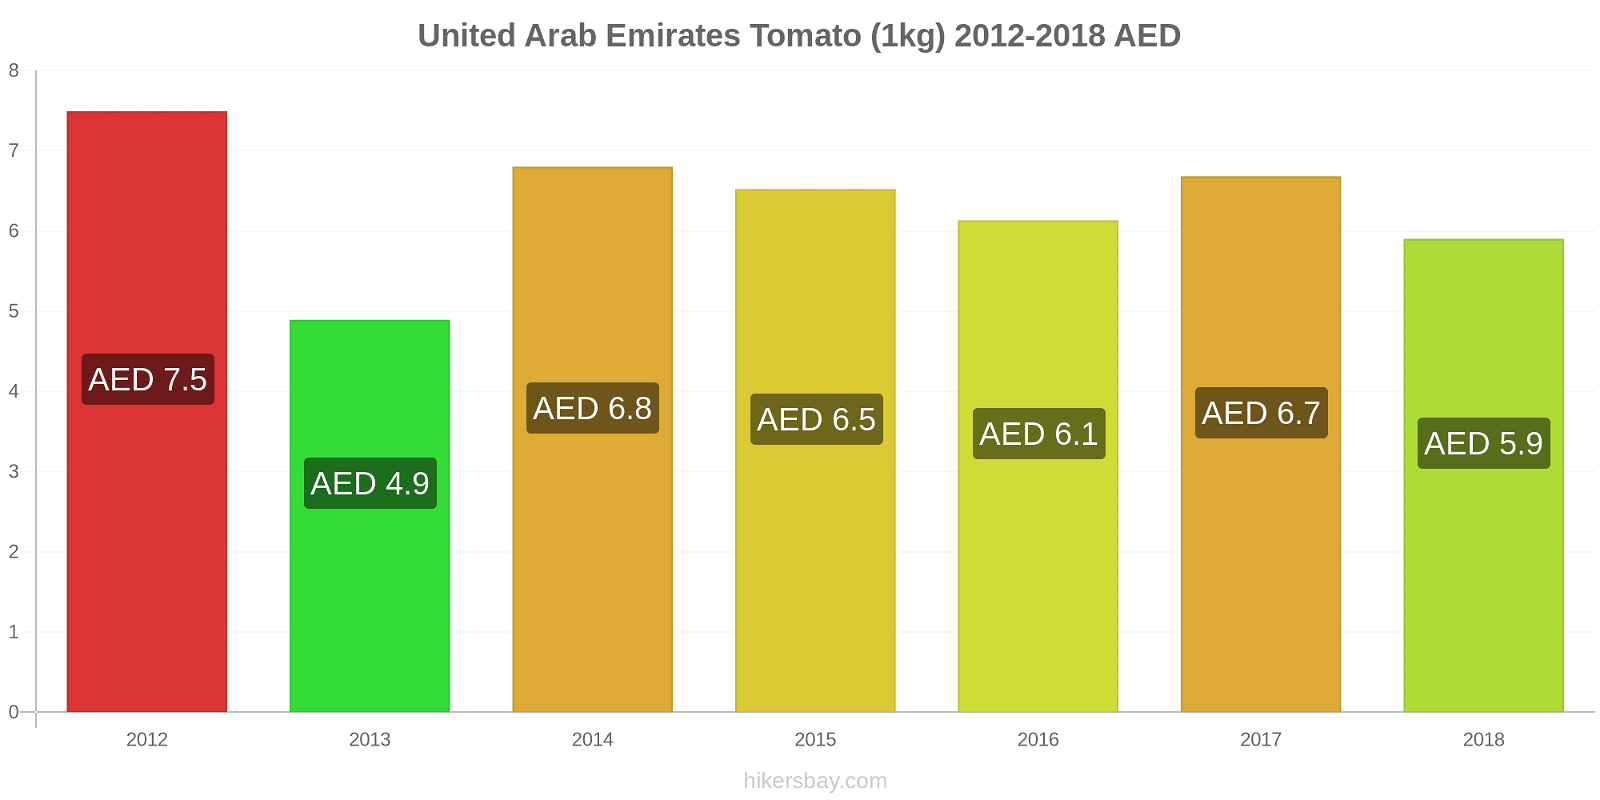 United Arab Emirates price changes Tomato (1kg) hikersbay.com